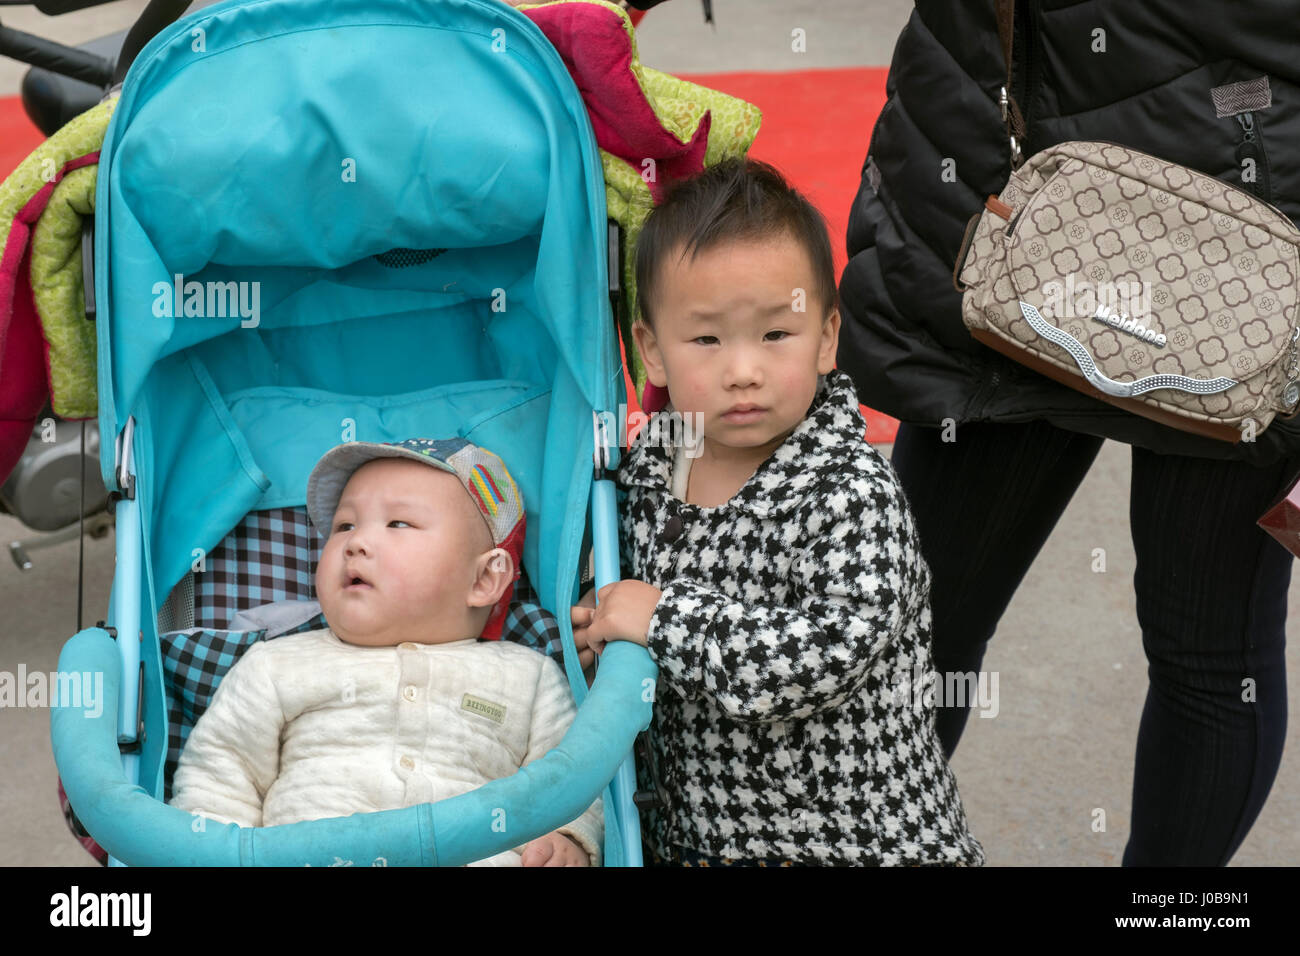 A sister and her new born brother in Xiong County, Baoding, China. China's new two-child policy sparks increase - Stock Image